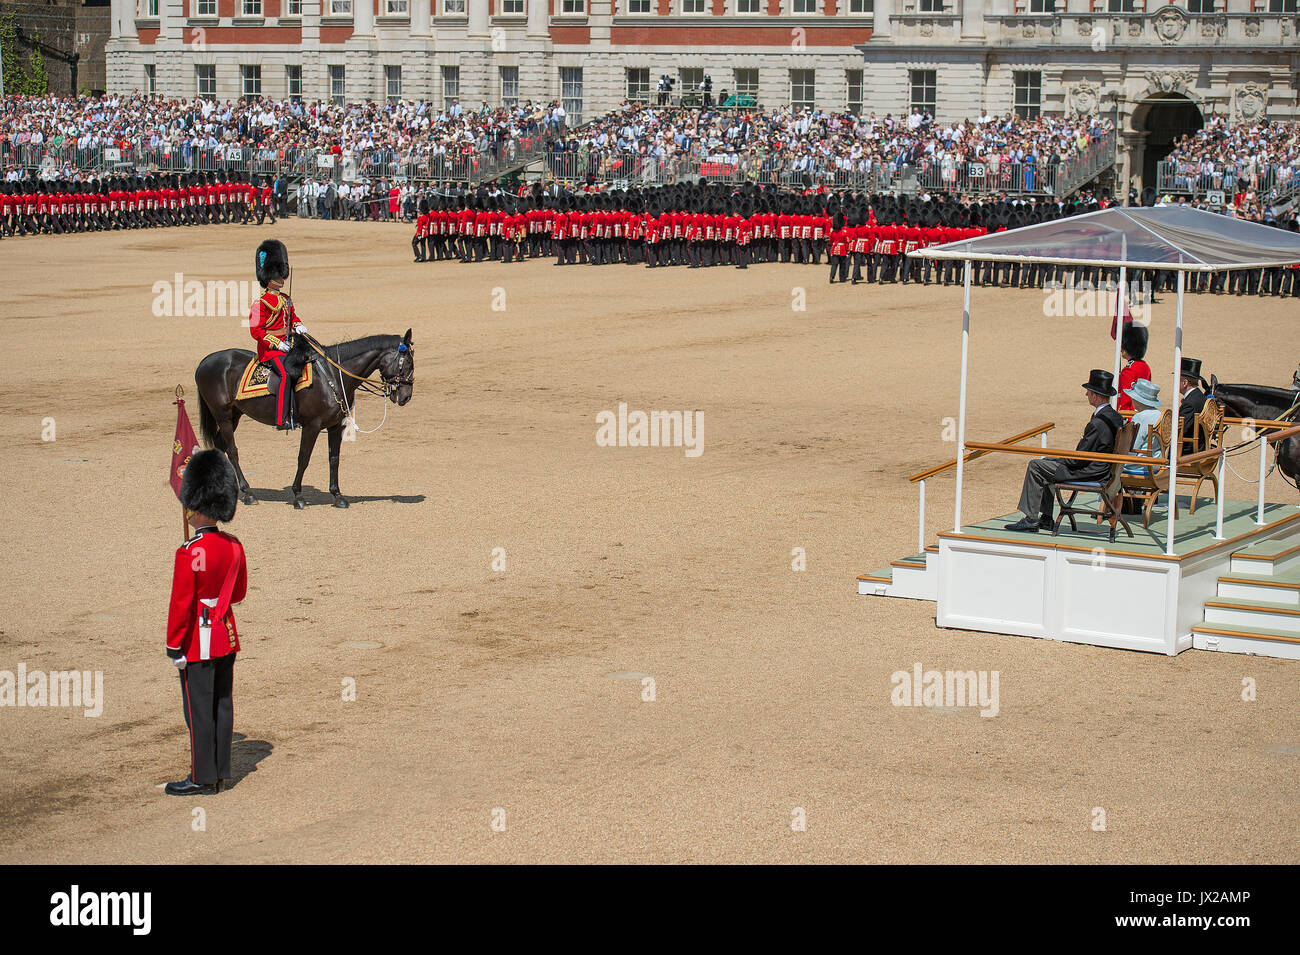 17th June 2017. Horse Guards Parade, London, UK. Trooping the Colour 2017, The Queen's Birthday parade - Stock Image